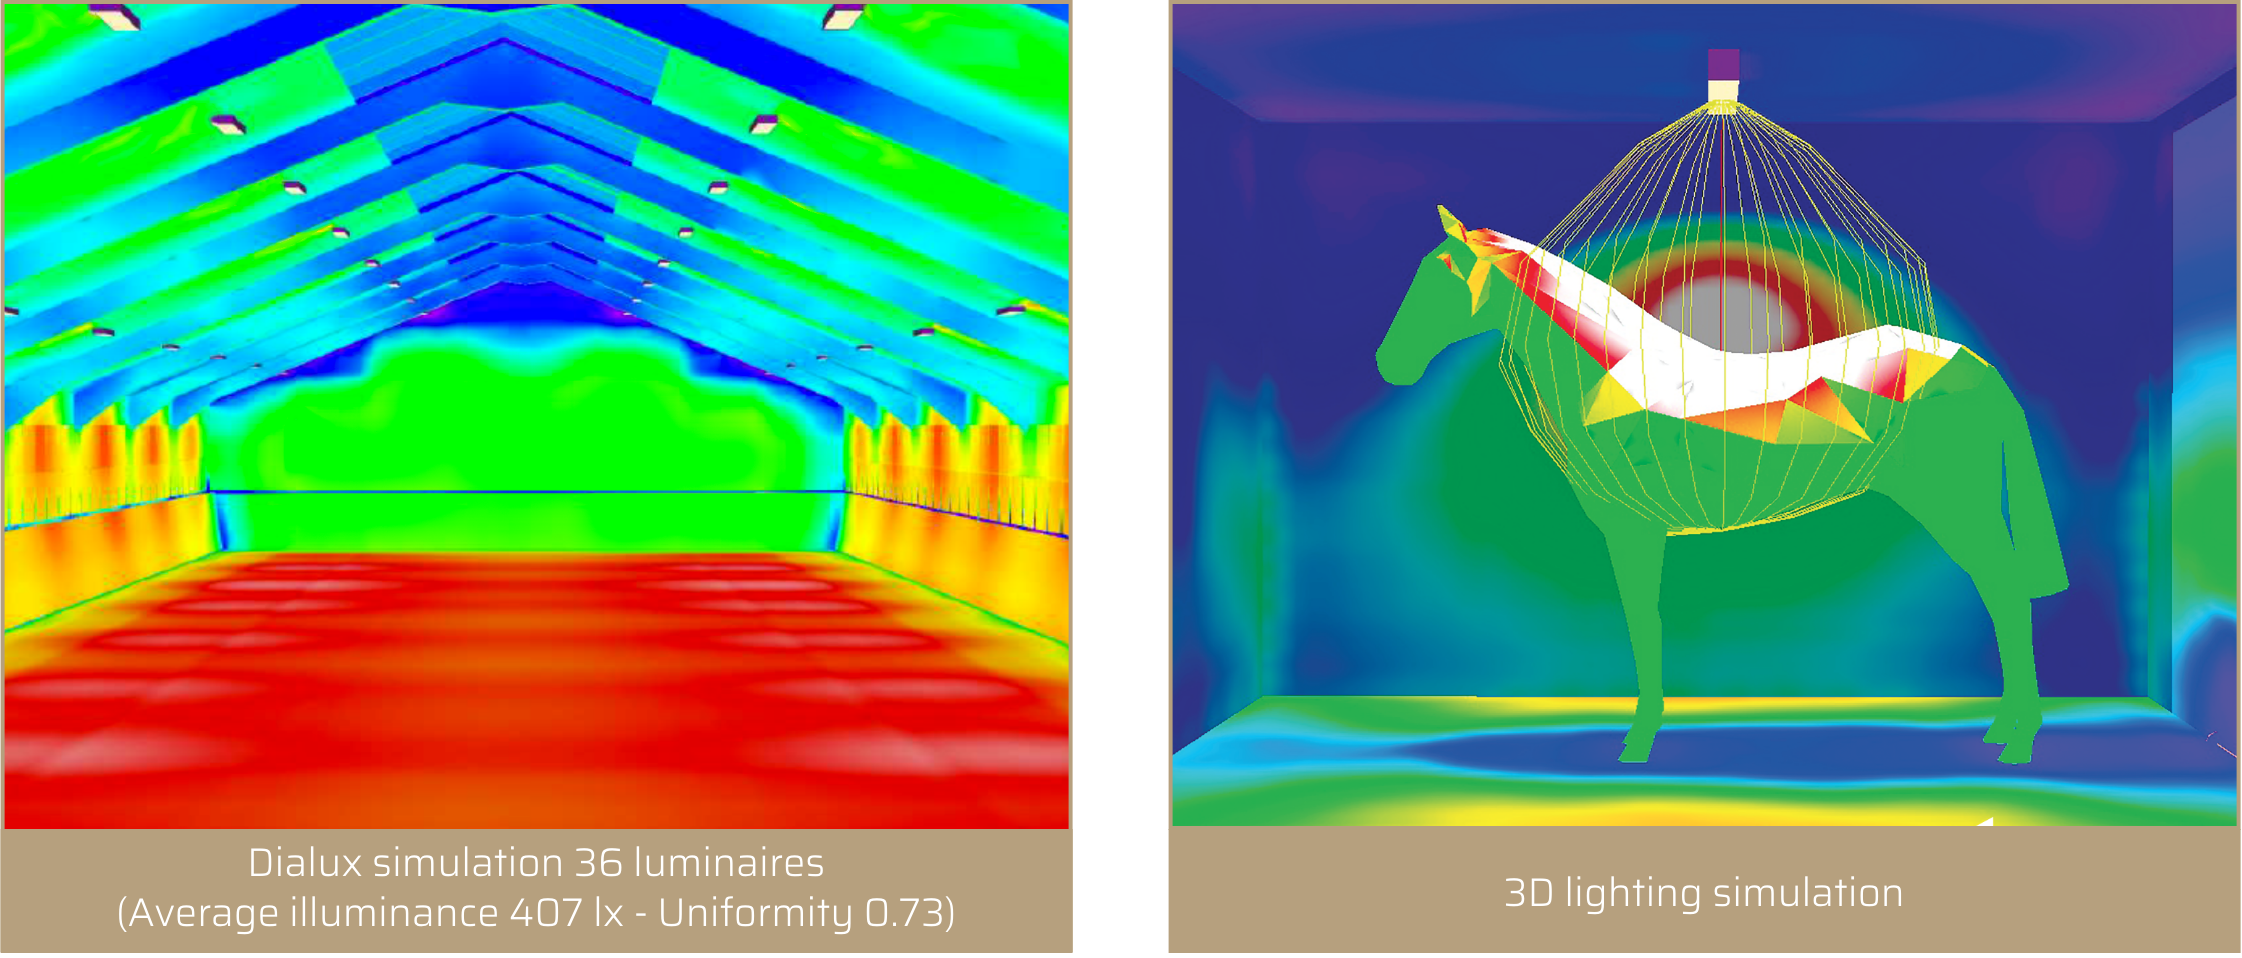 PROXIMAL Lighting study - Equestrian arena, horse stables